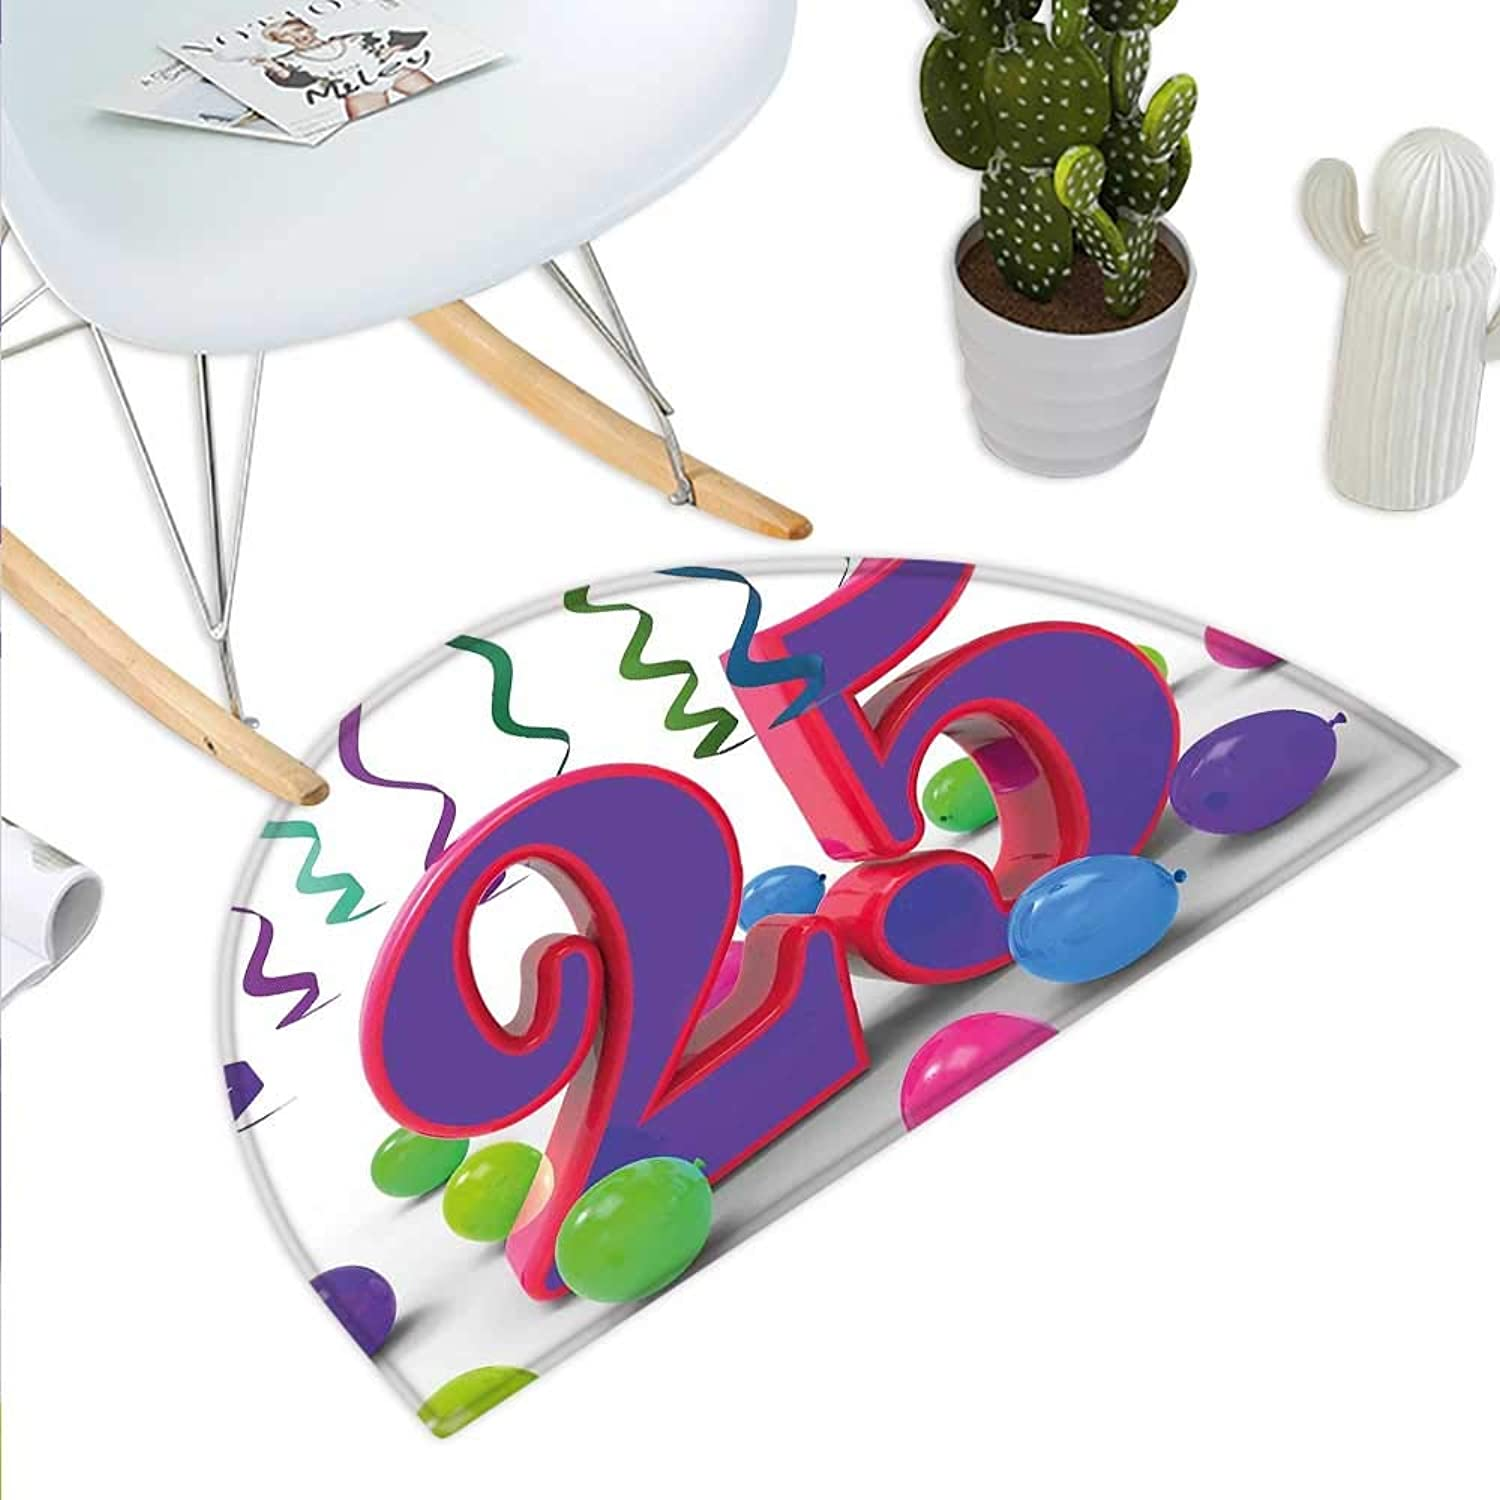 25th Birthday Semicircle Doormat Vibrant Birthday Party Set Up colorful Ribbons and Balloons on The Ground Halfmoon doormats H 27.5  xD 41.3  Multicolor